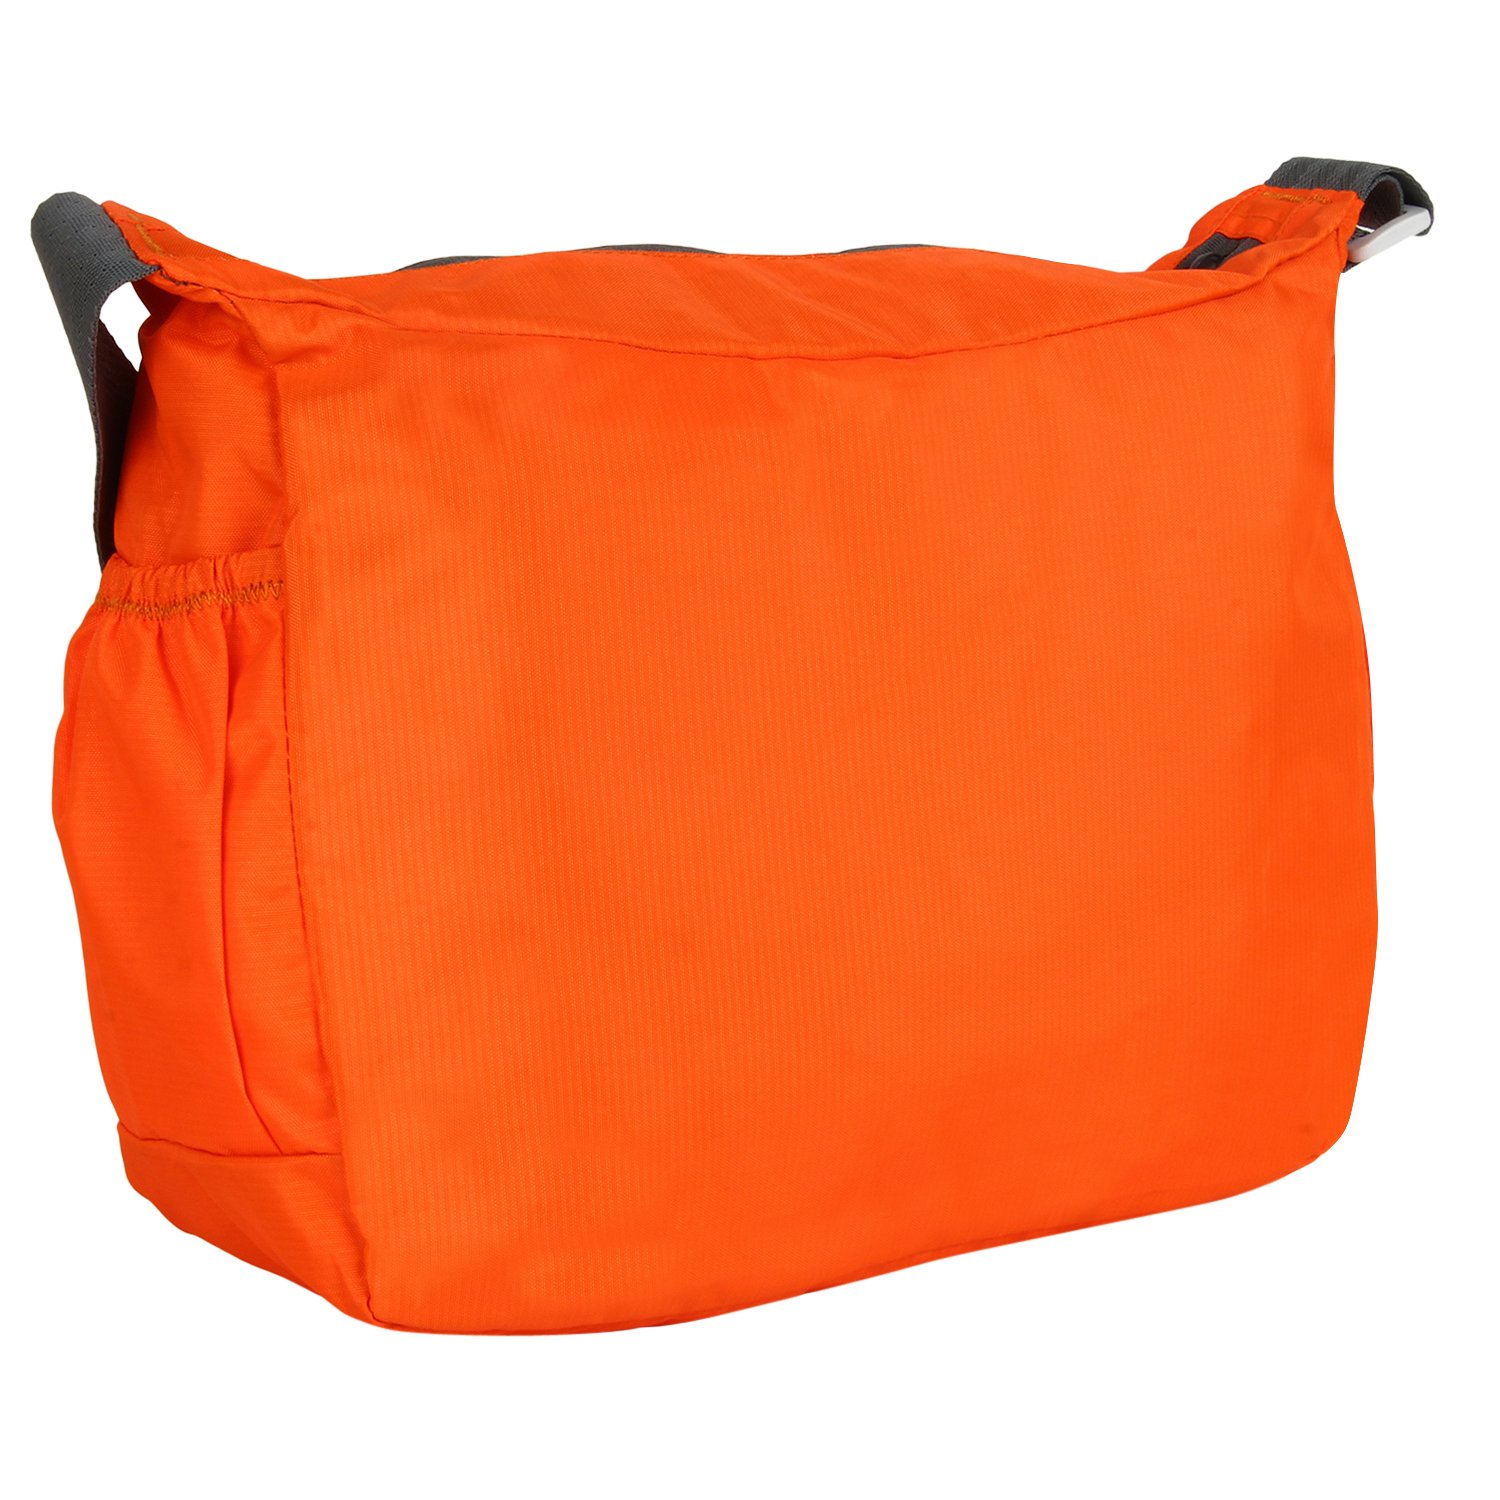 86a09ec4a1 Buy Bendly Women s Sling Bag Orange Bosfb1 Online at Low Prices in India -  Amazon.in